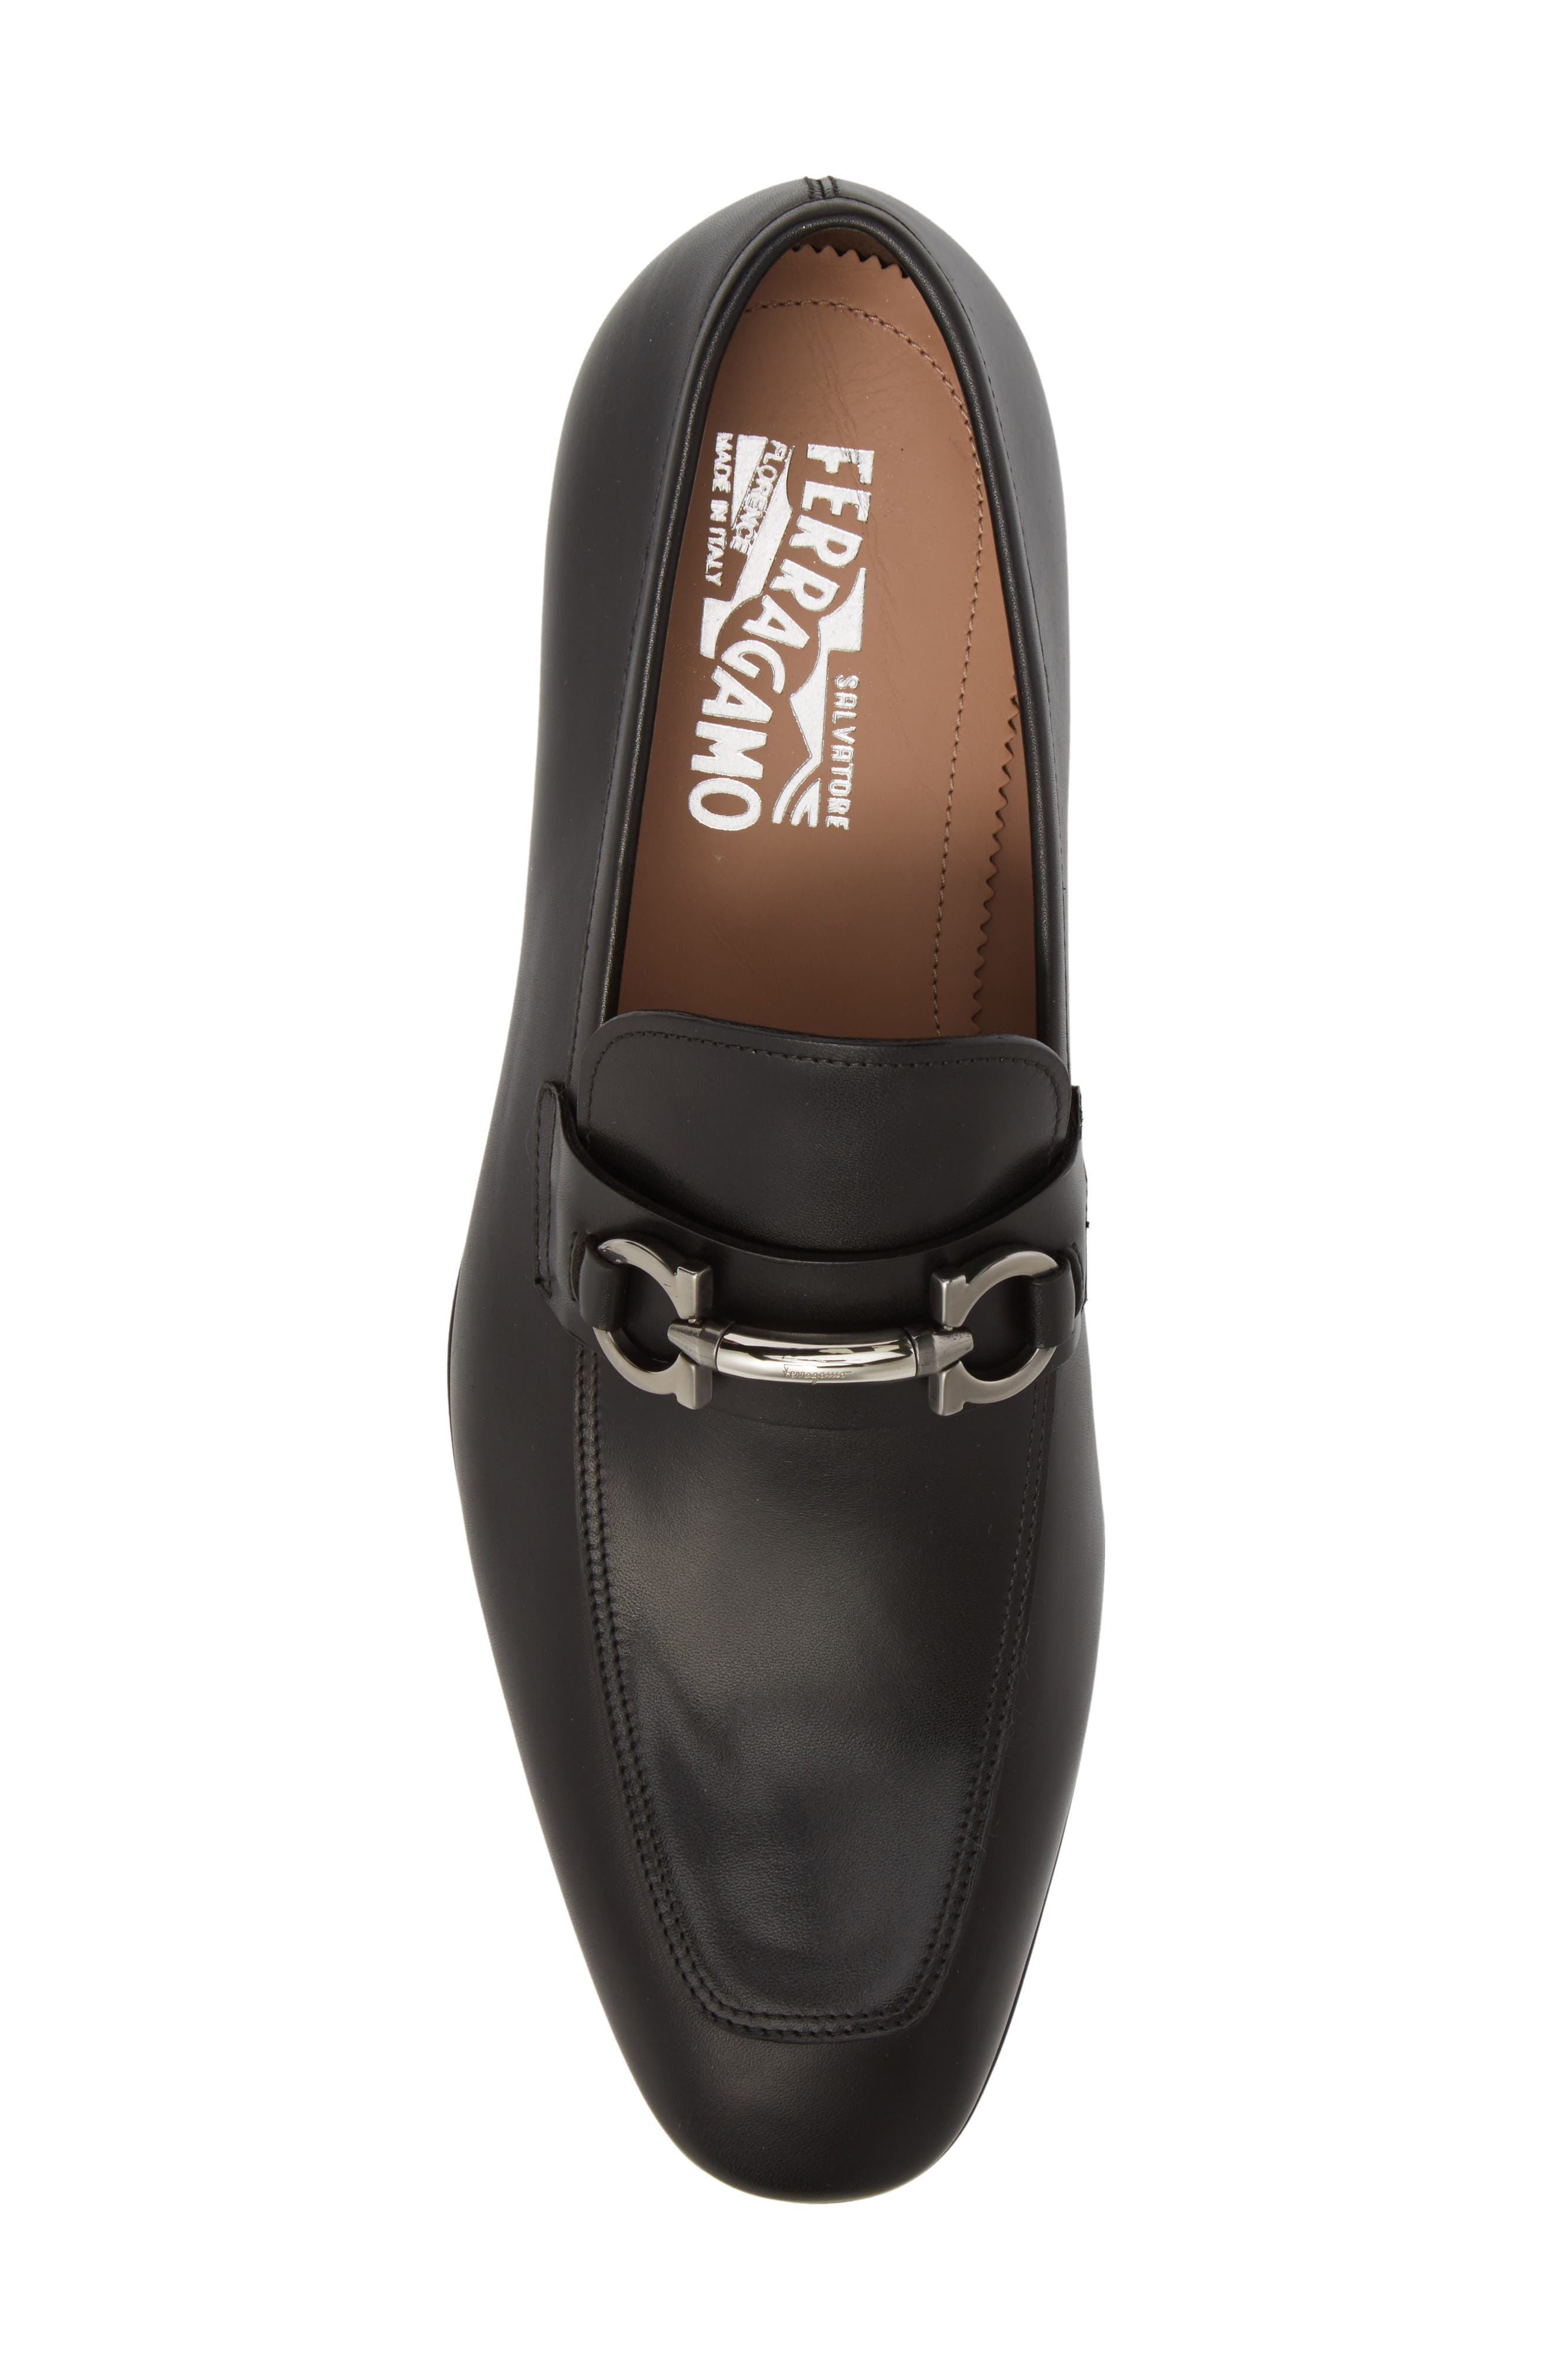 SALVATORE FERRAGAMO, Benford Rounded Bit Loafer, Alternate thumbnail 5, color, NERO LEATHER